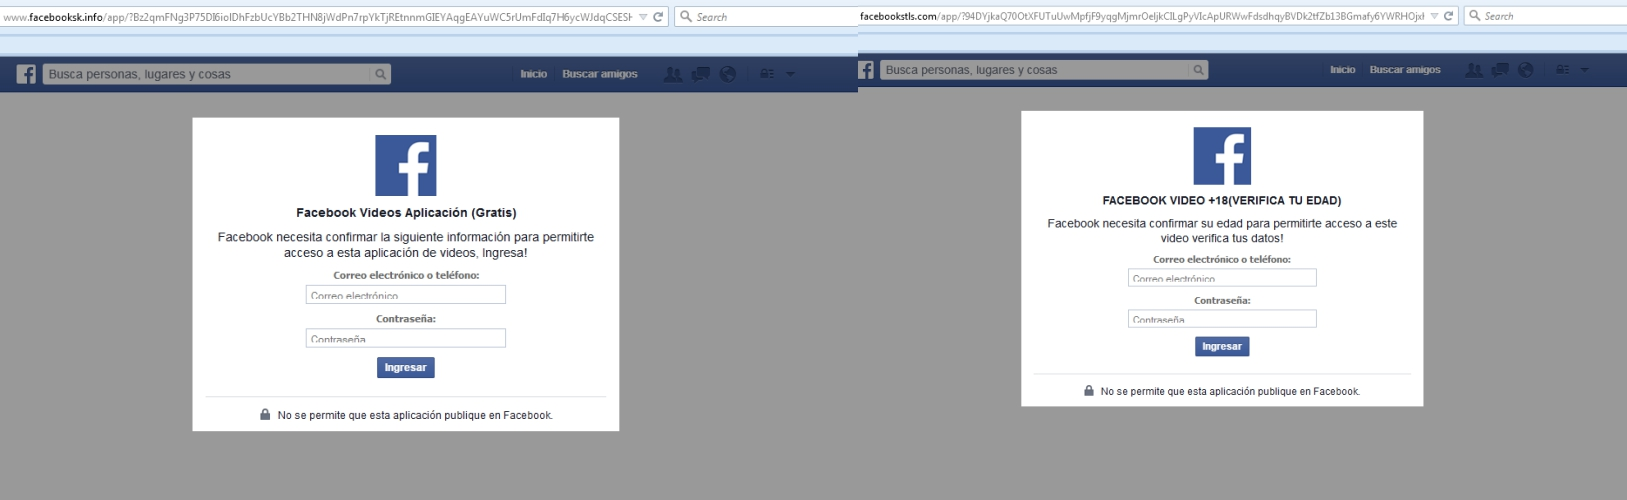 latest-facebook-phishing-scam-targets-video-users-side